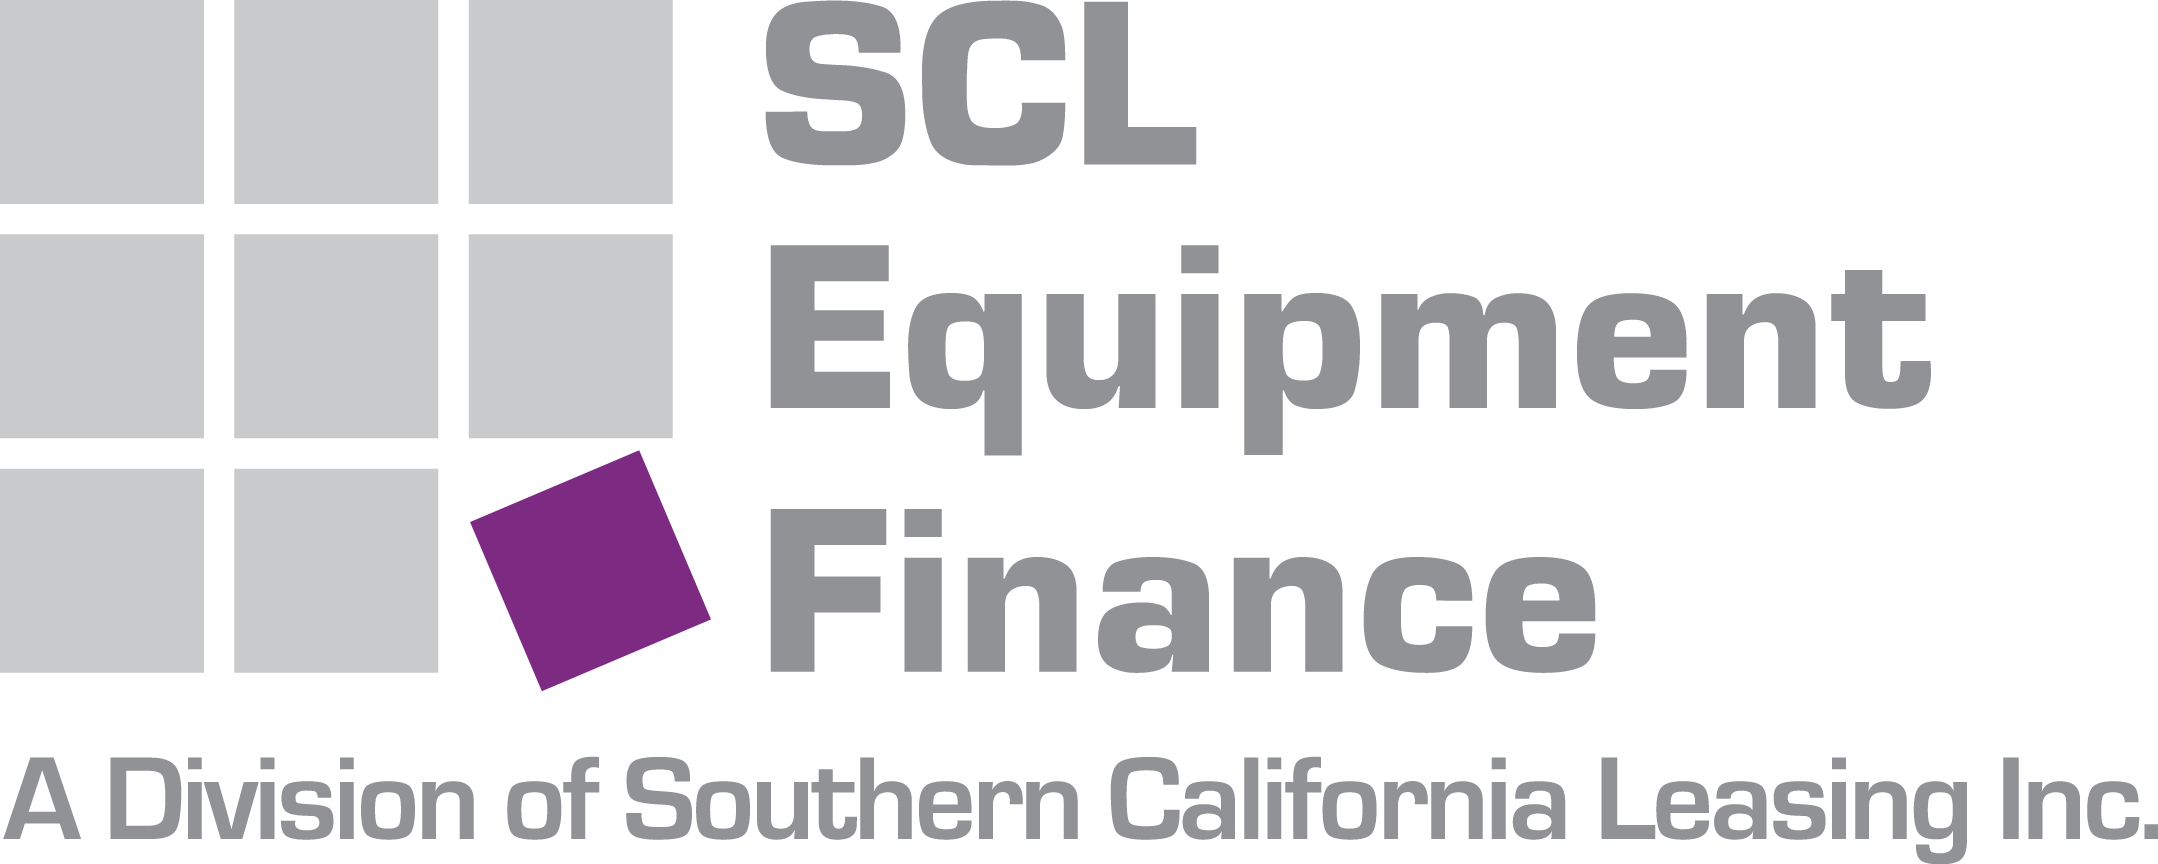 Athos Partner Southern California Leasing